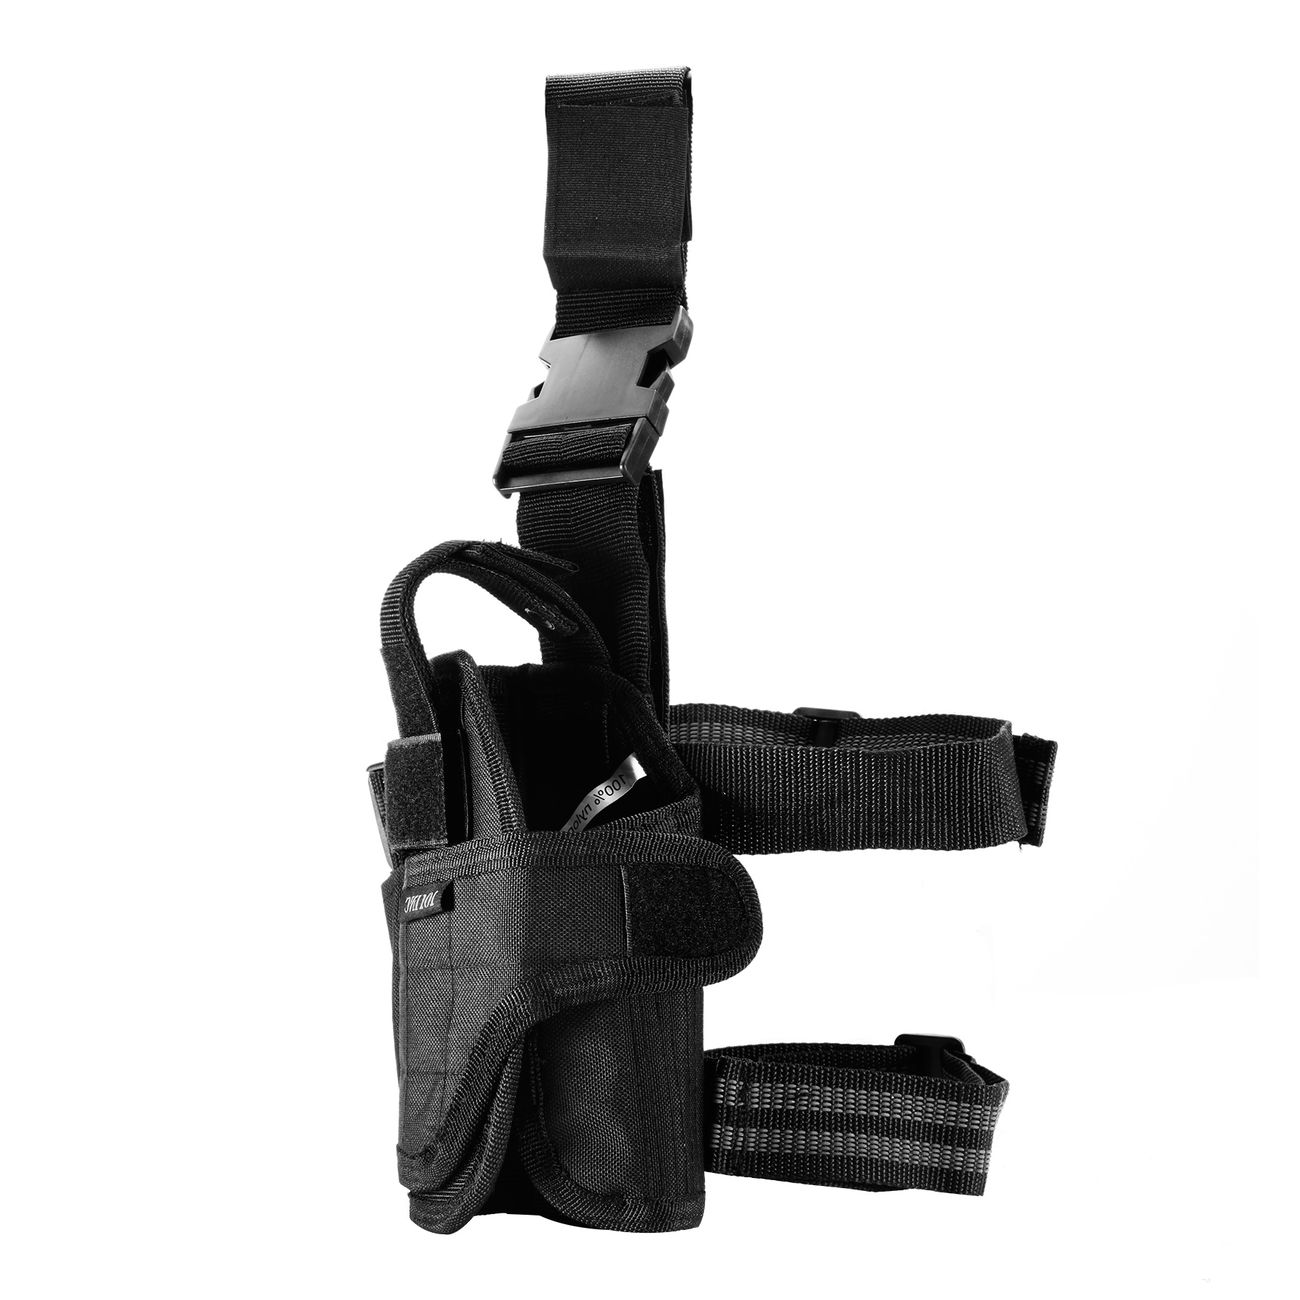 101 INC. Adjustable Holster schwarz 1